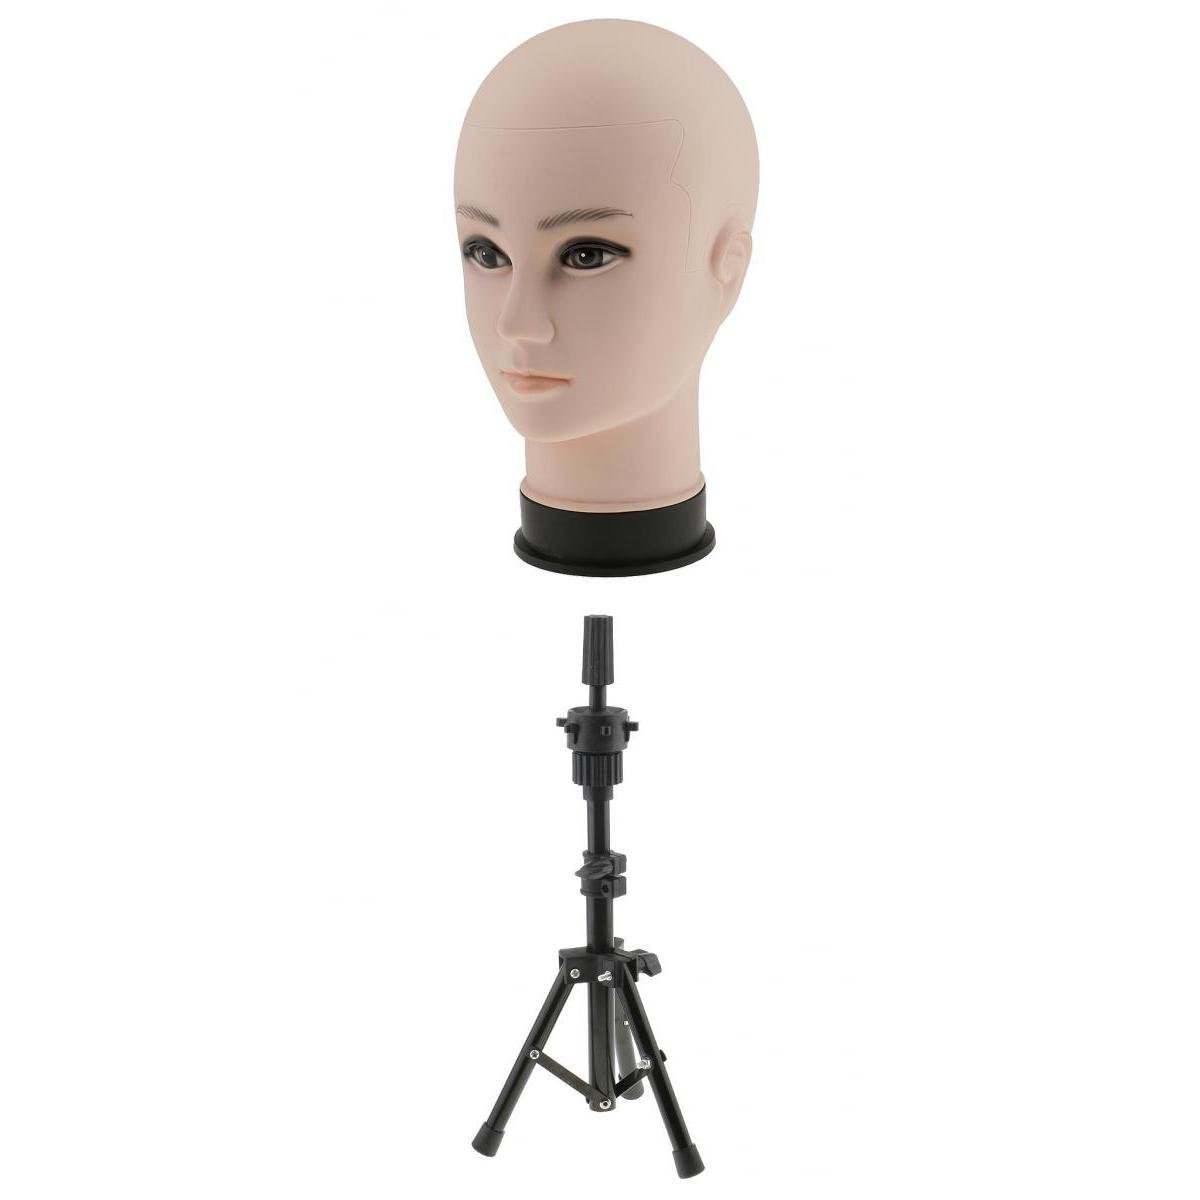 D DOLITY 22 inches Stunning Plastic Cosmetology Mannequin Head for Wig Making Hat Glasses Displaying with Heavy Duty Tripod Model Support Stand